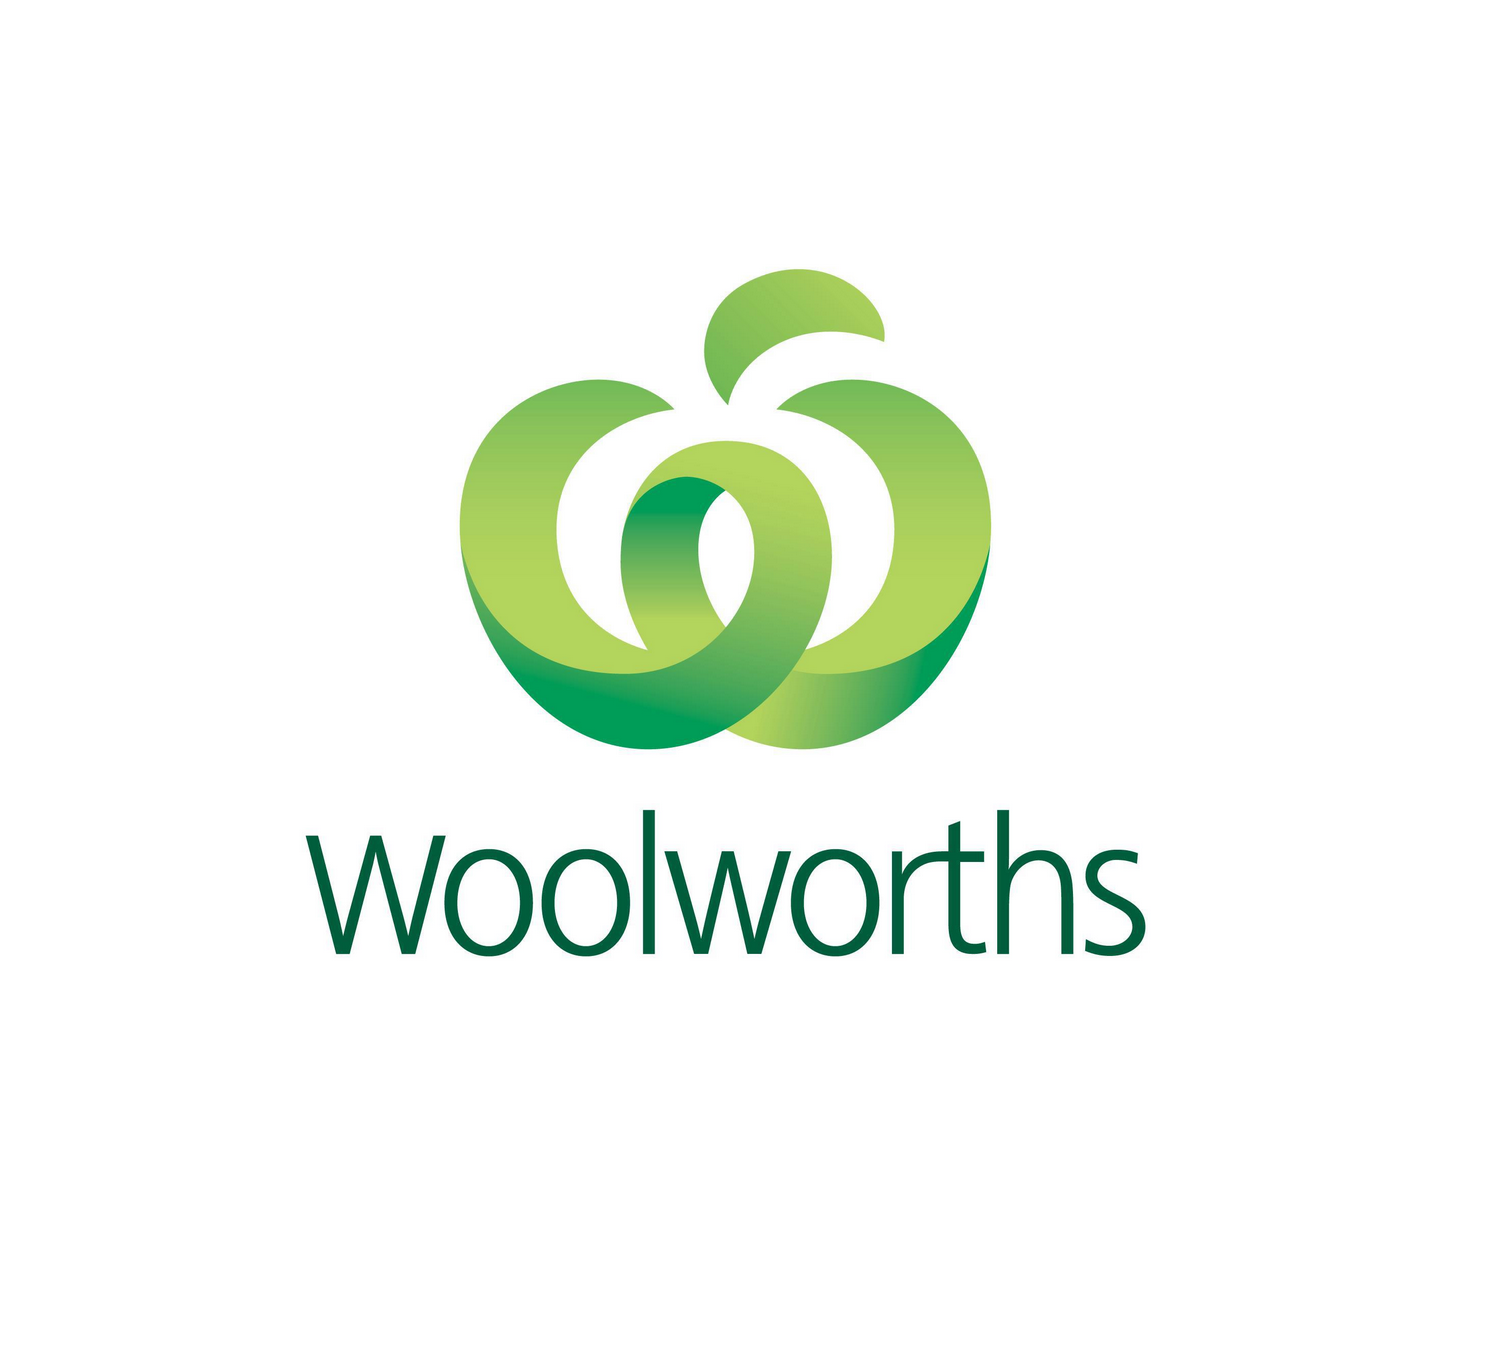 woolworths-logo-1.png